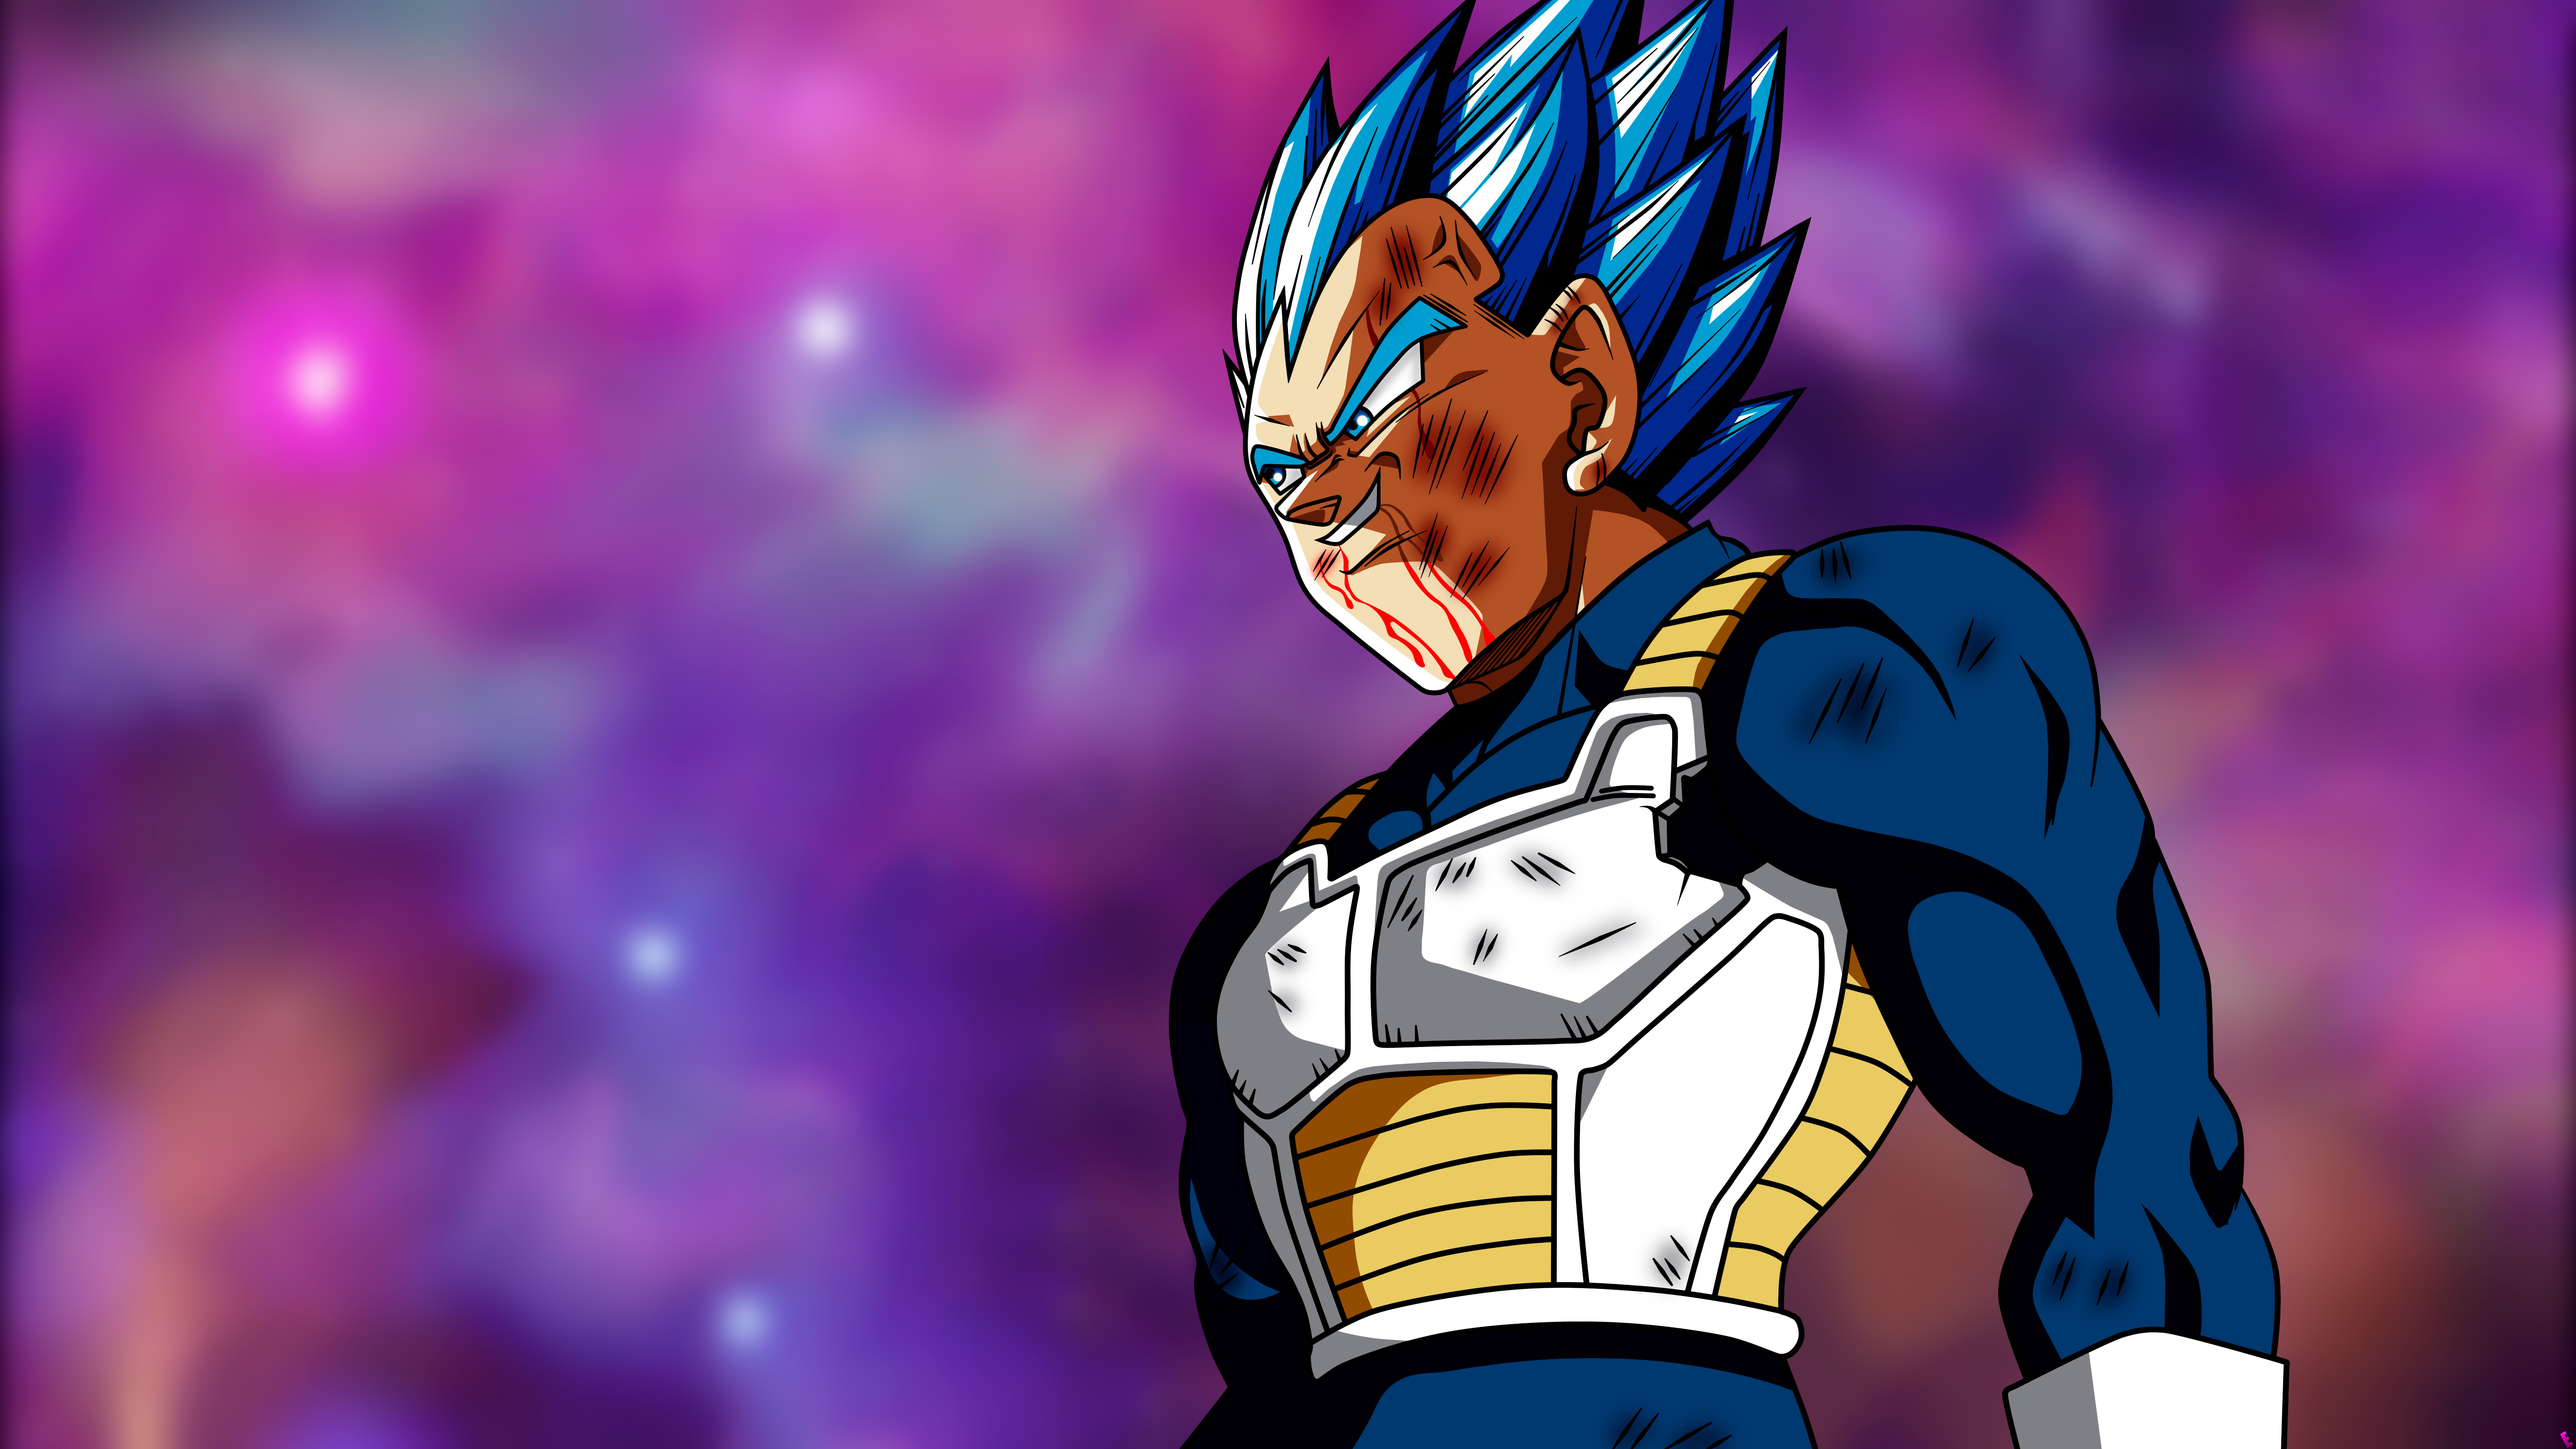 Dragon Ball Super Vegeta Dragon Ball Super Wallpaper